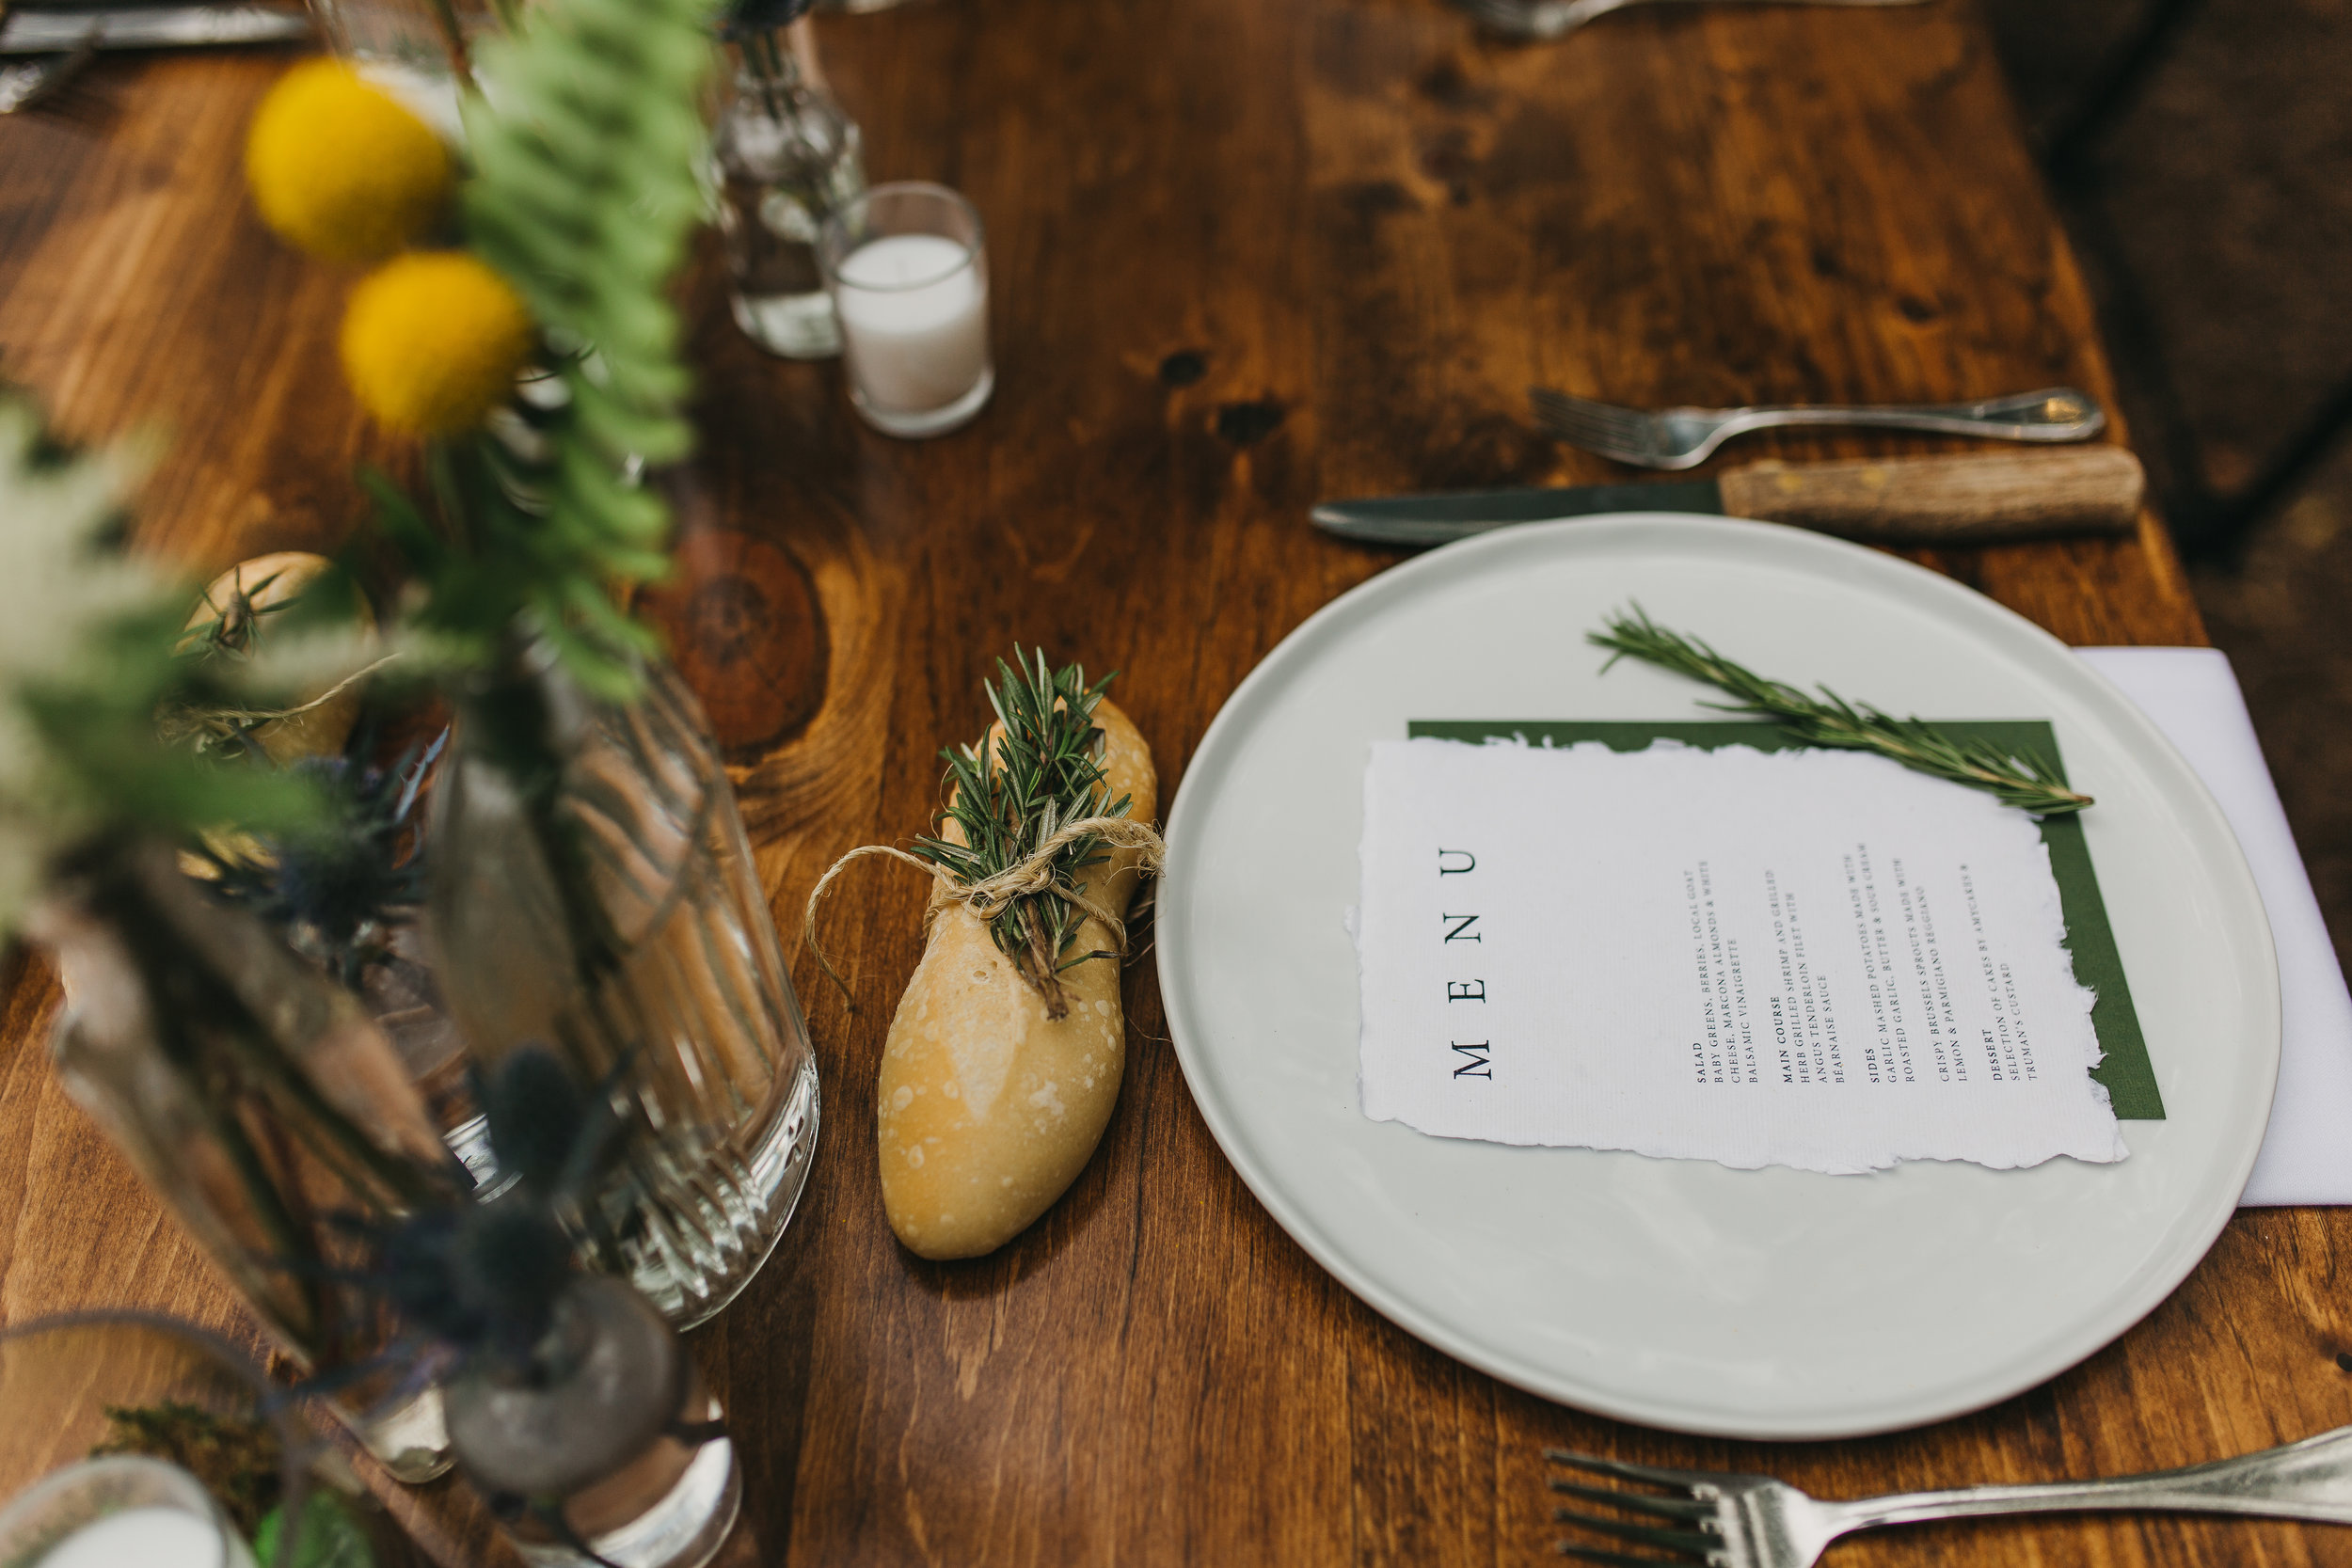 wrapped bread with rosemary on wedding place setting